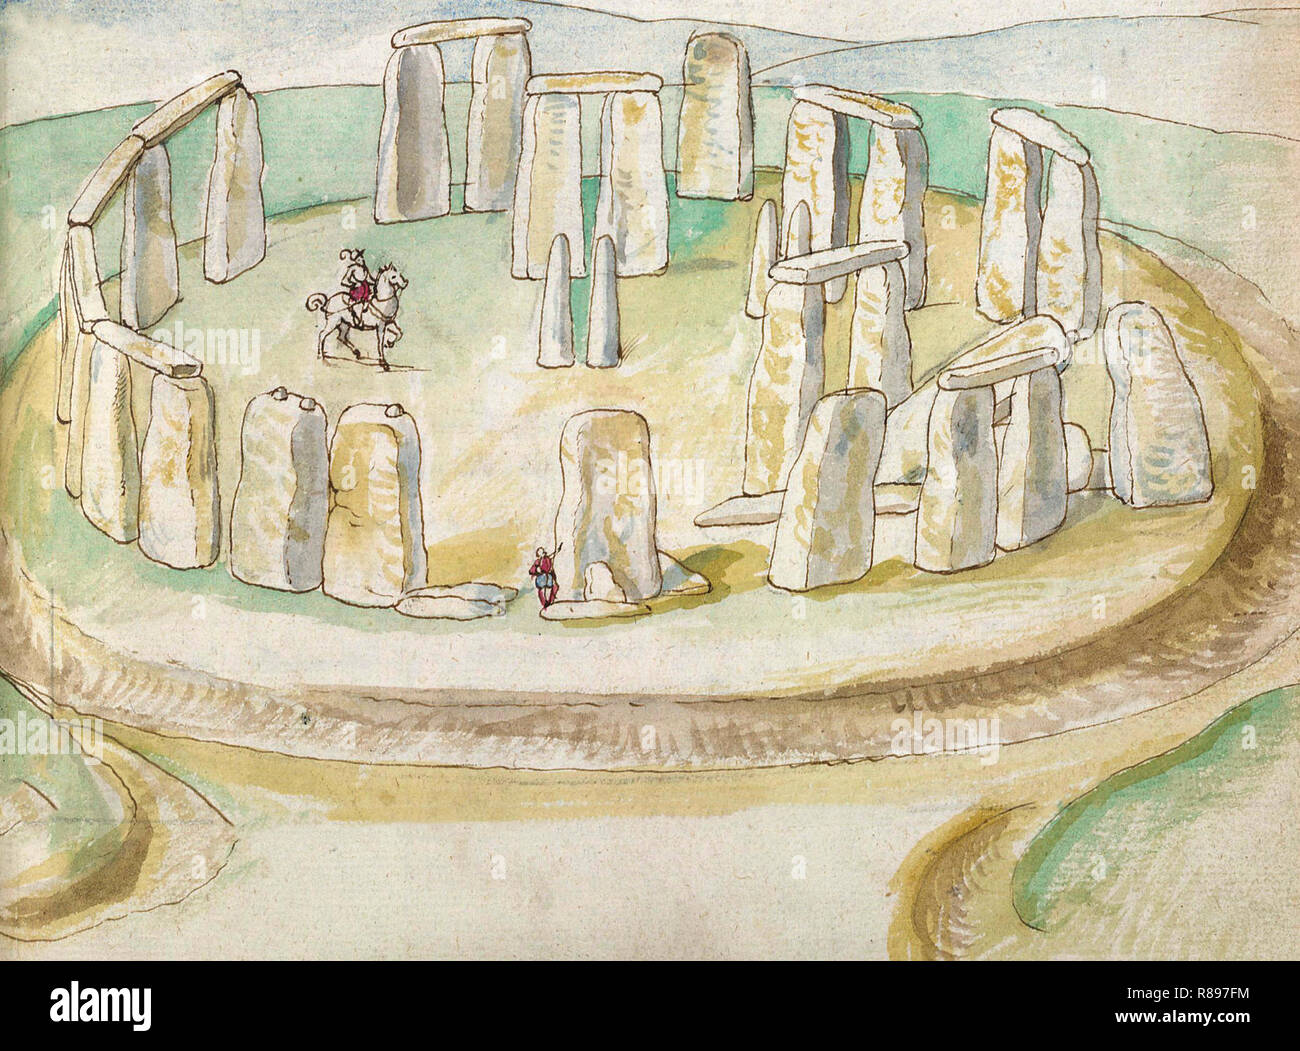 First realistic Painting of Stonehenge, painted with watercolors by Lucas de Heere, circa 1575 - Stock Image